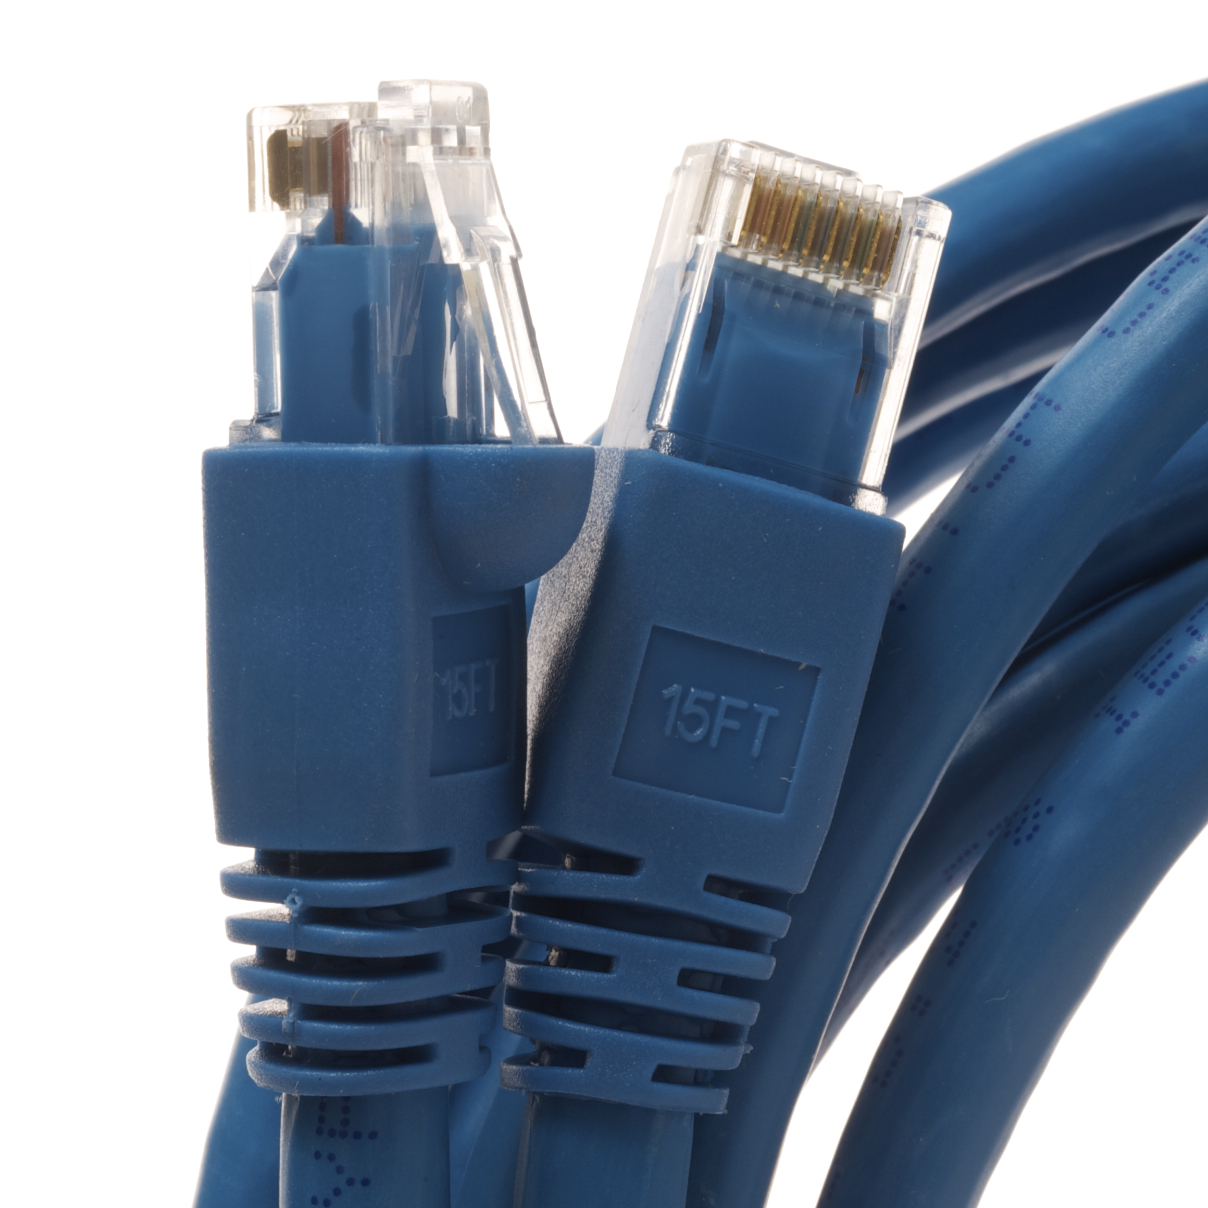 Category 6A Blue Network Cables